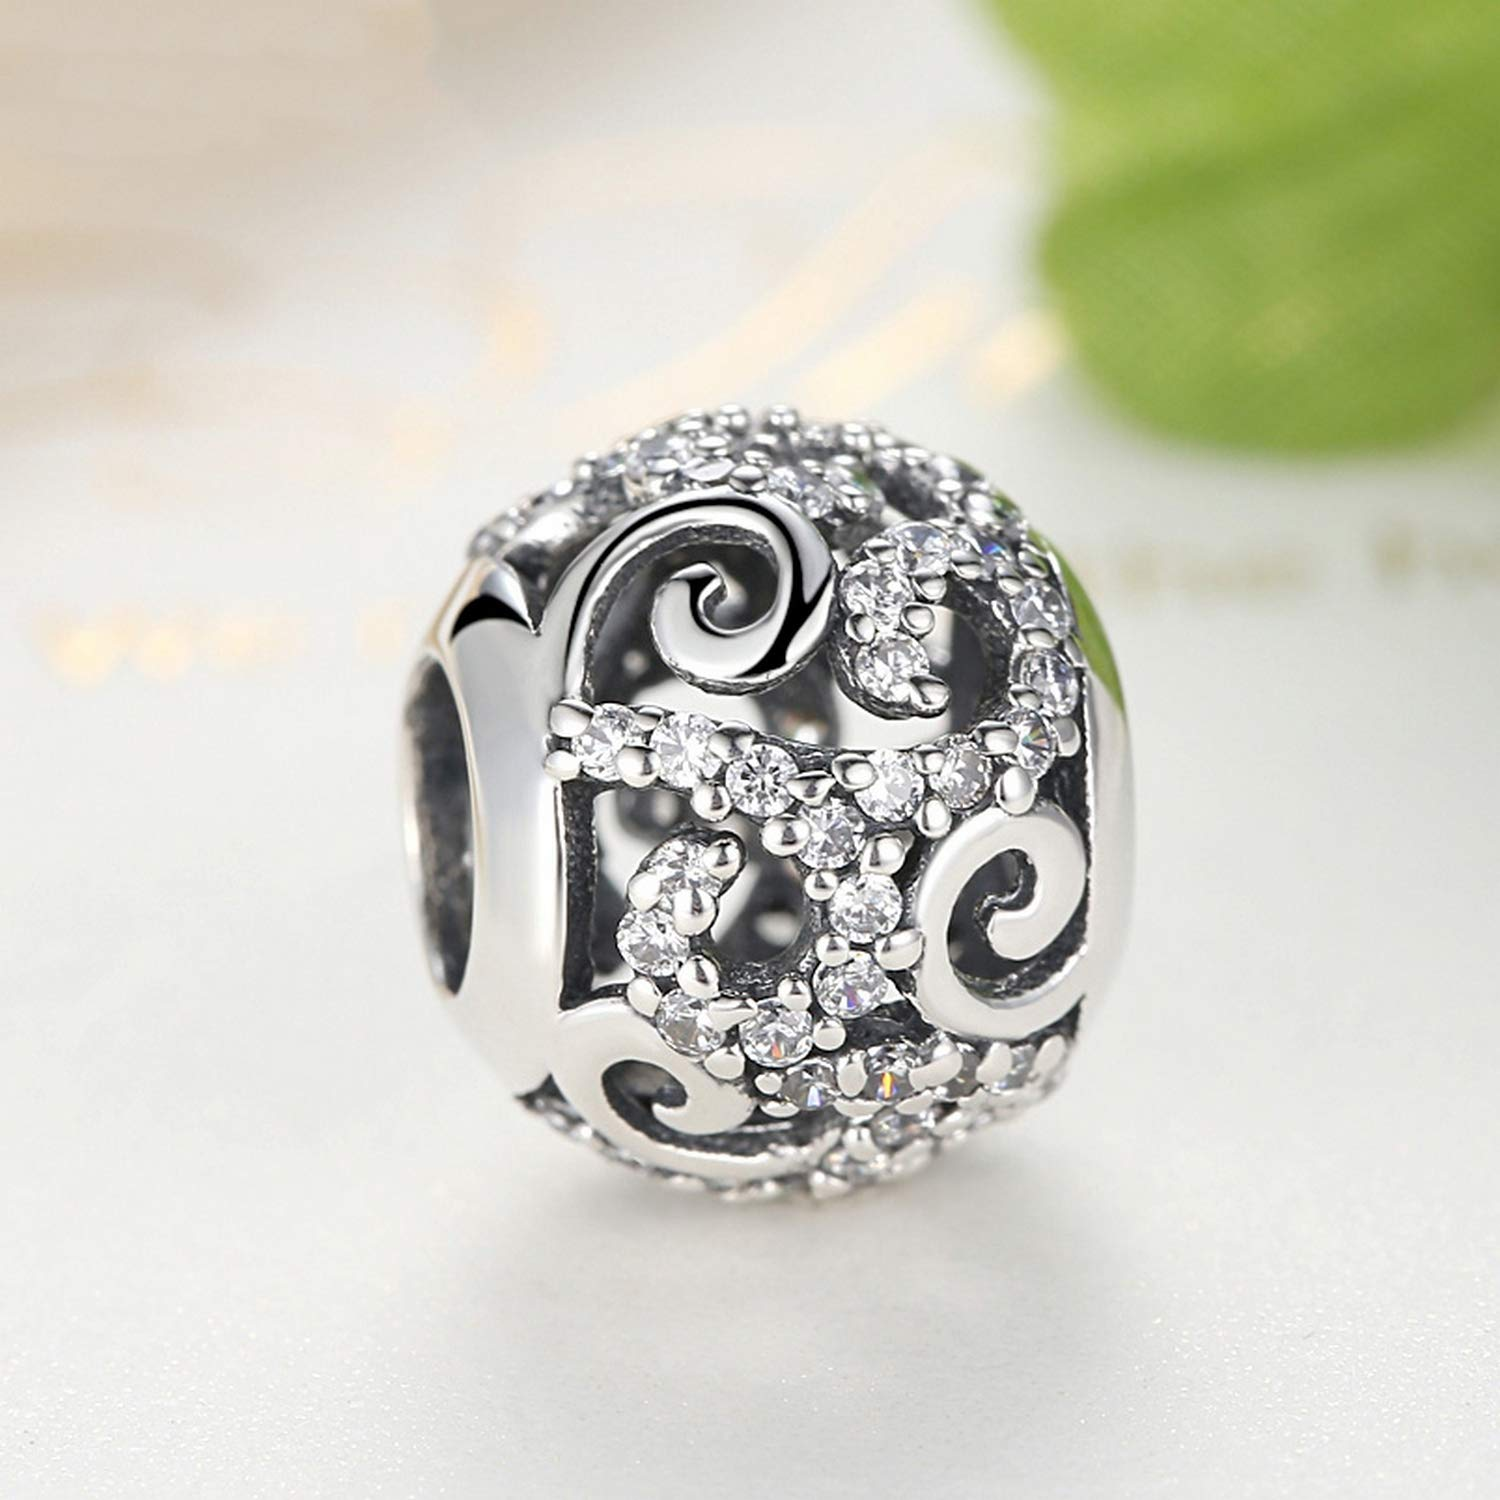 EverReena Beads Openwork Charm with Clear Cubic Zircon for Silver Bracelets